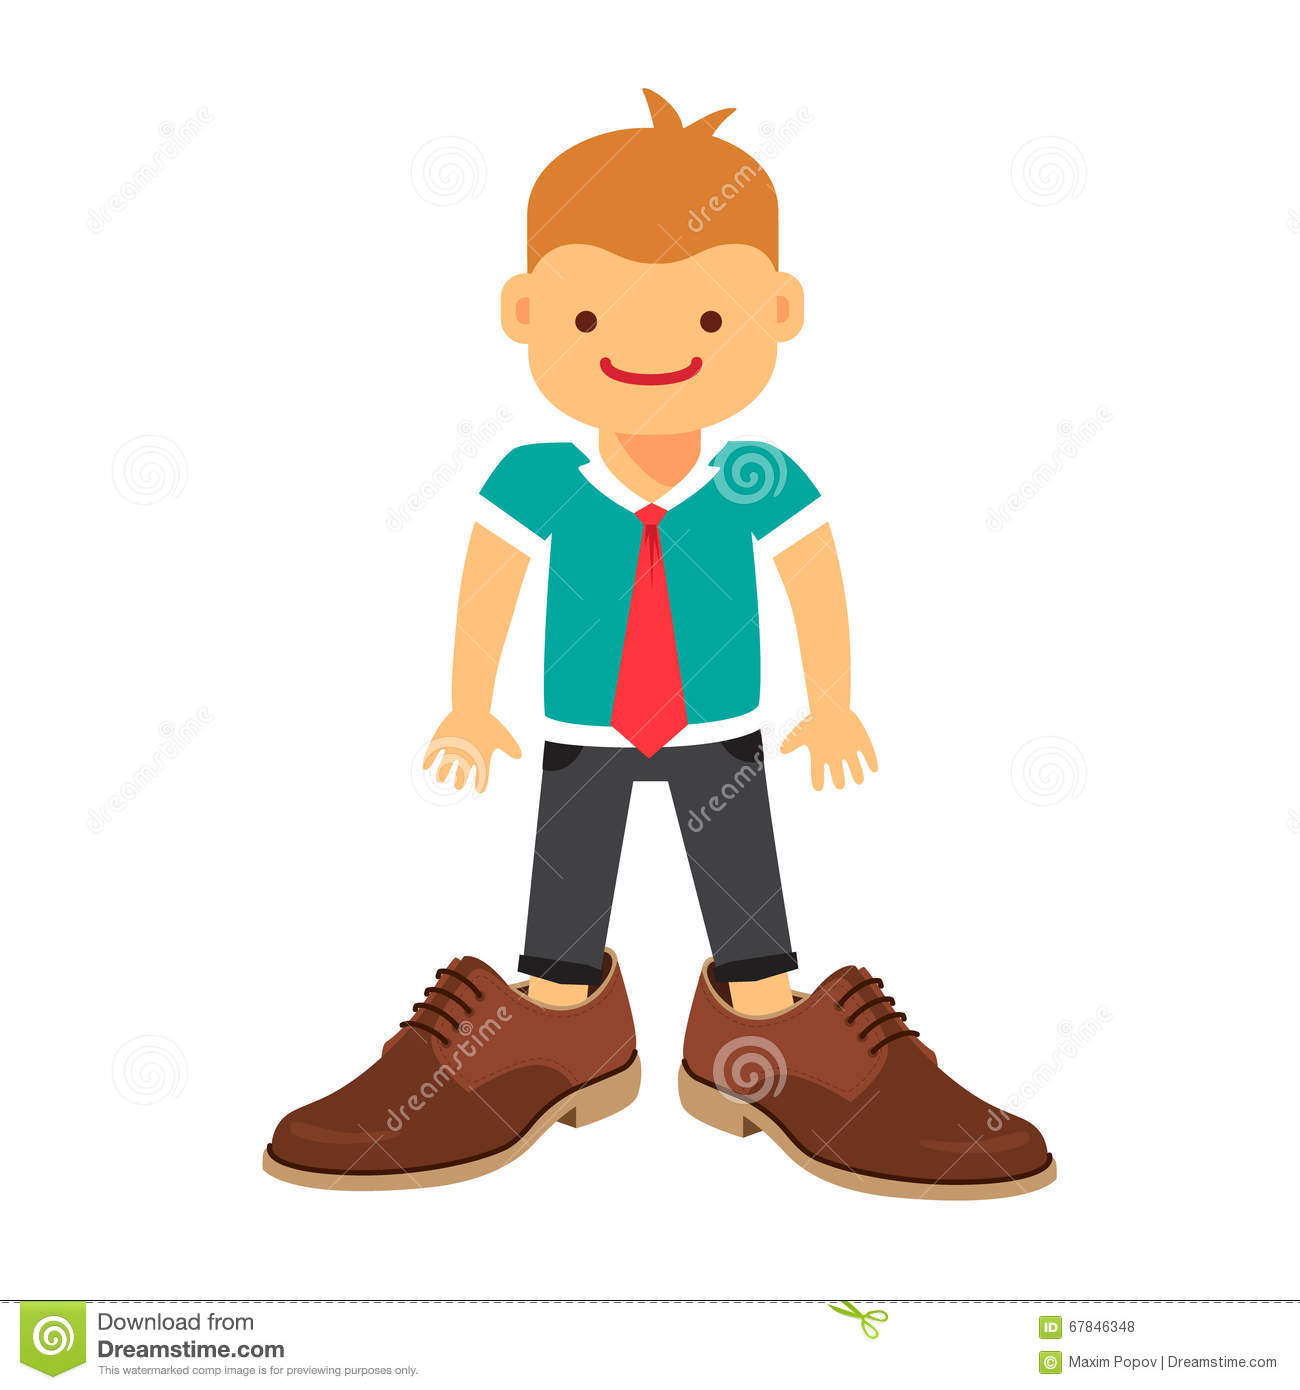 Child Wearing Adult Shoes Royalty-Free Stock Photo | CartoonDealer.com #12647265